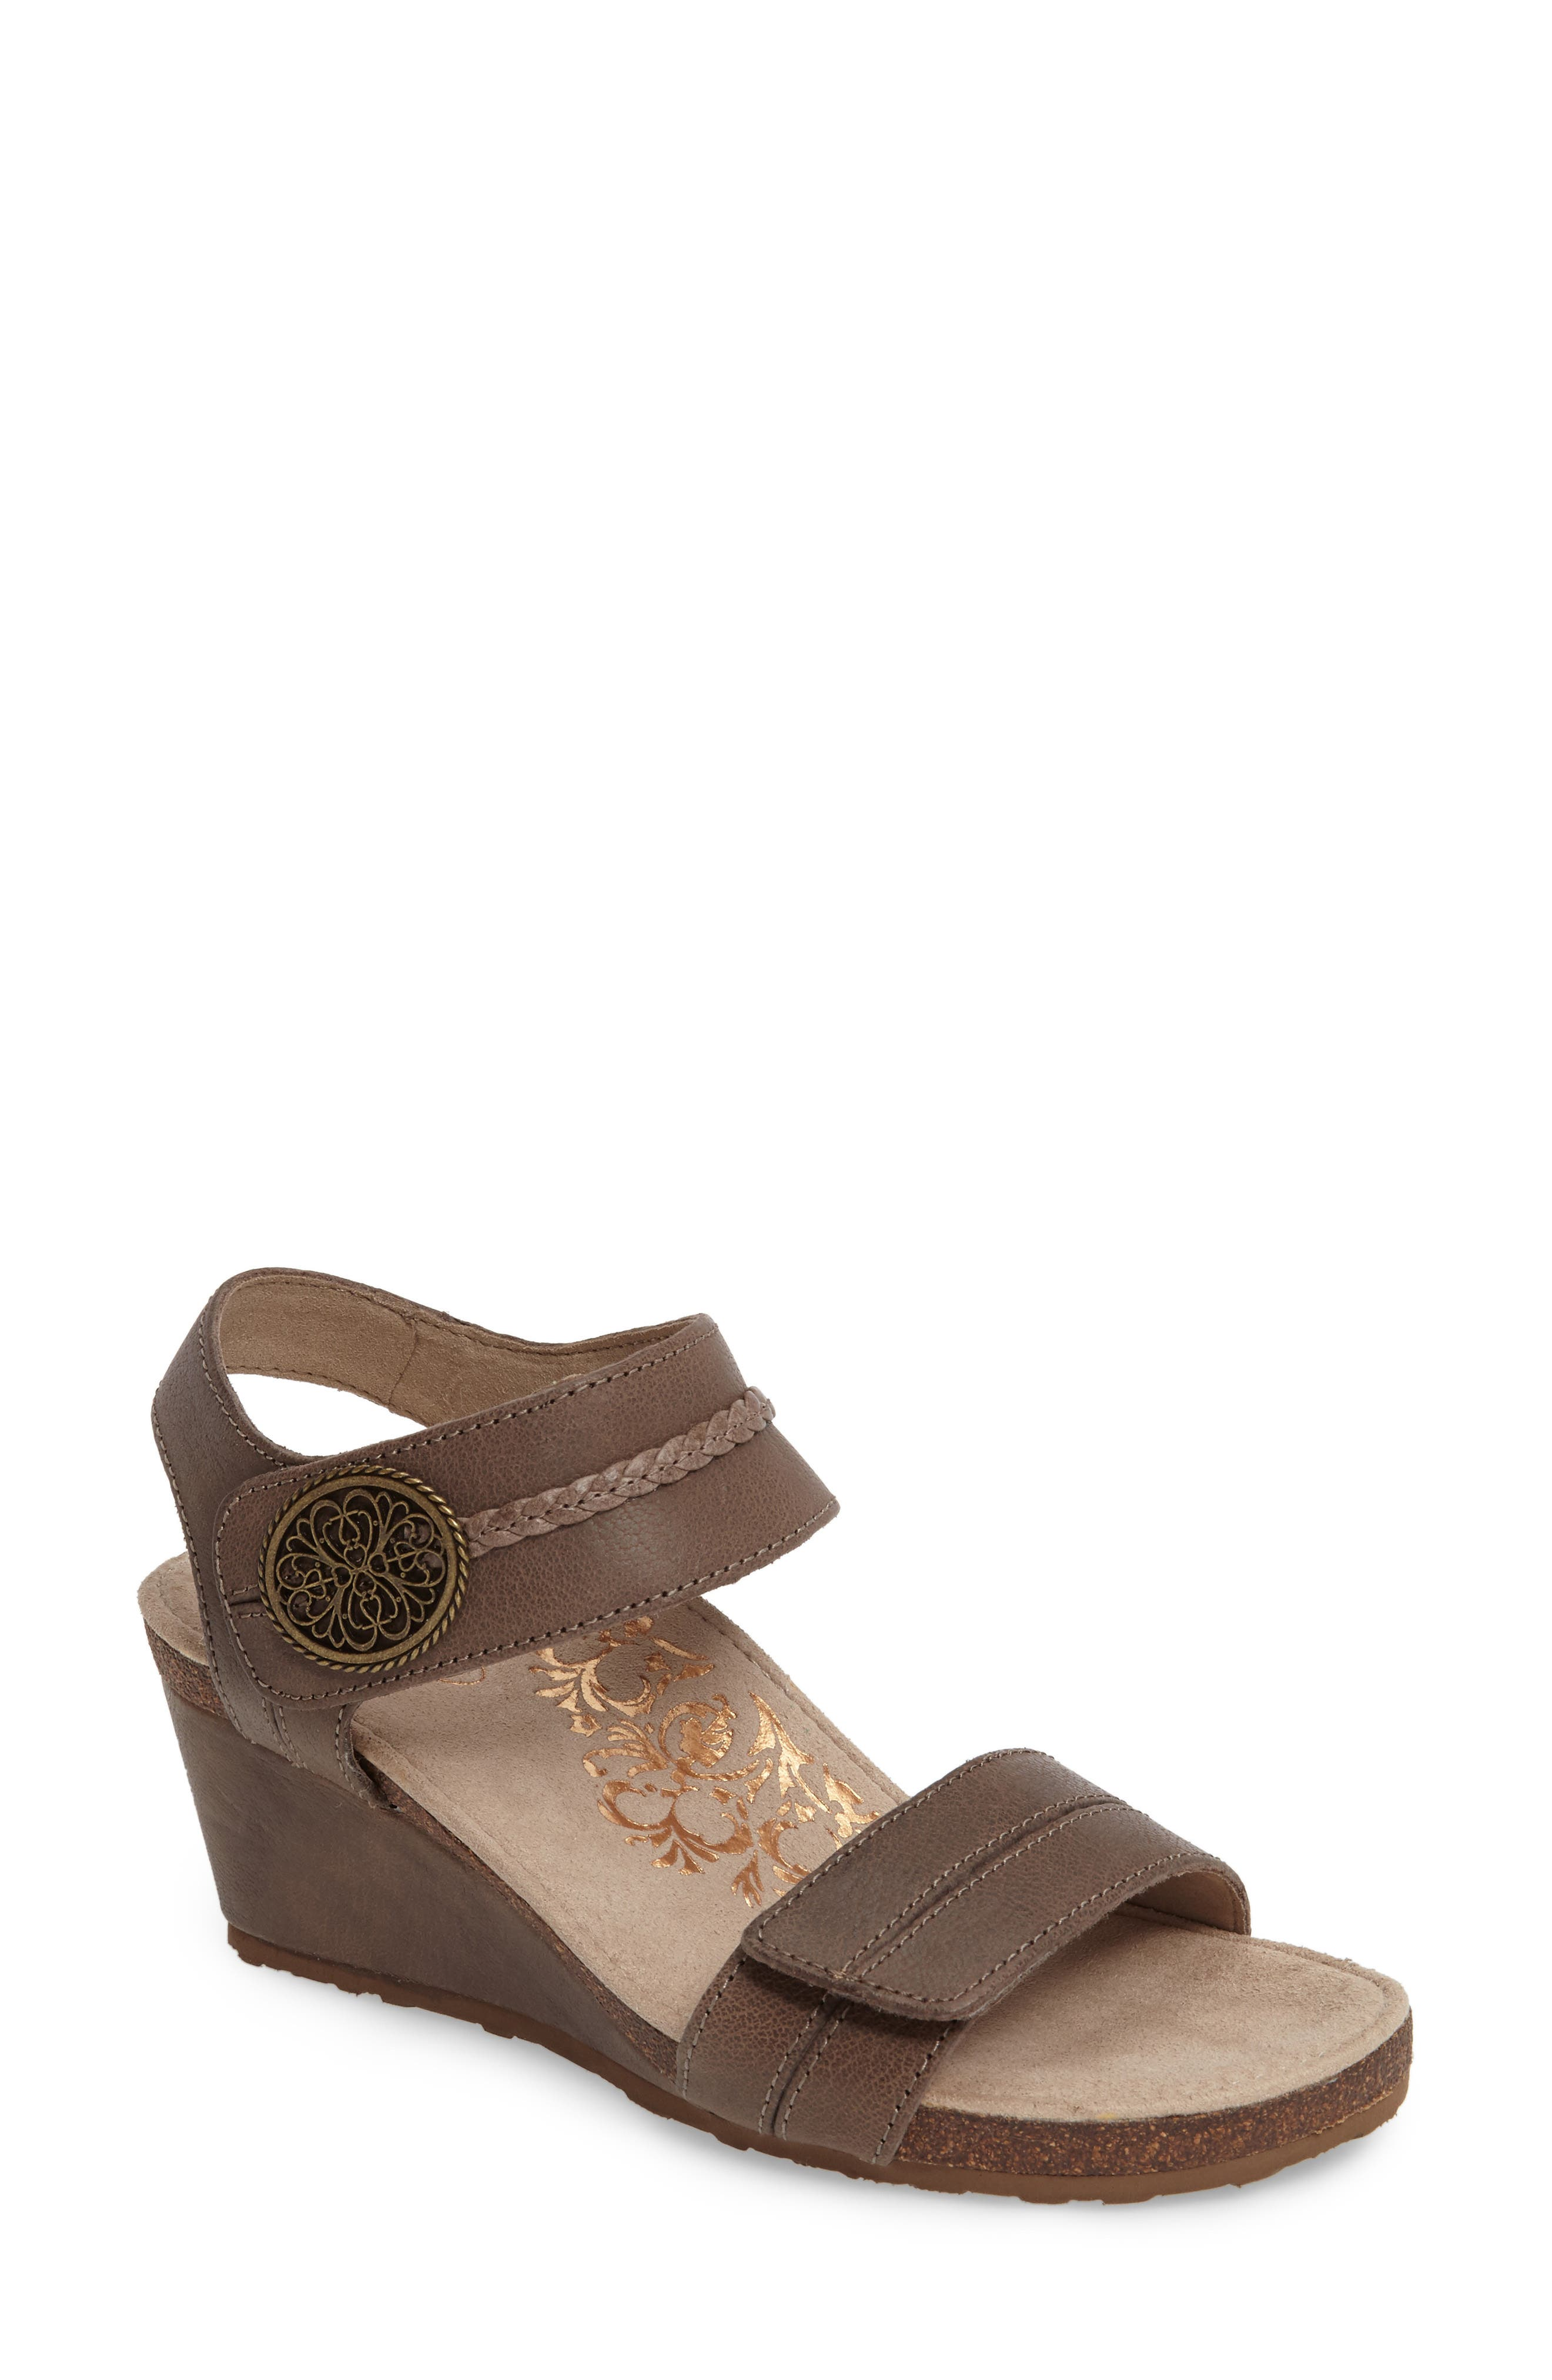 'Arielle' Leather Wedge Sandal,                             Main thumbnail 1, color,                             Stone Leather